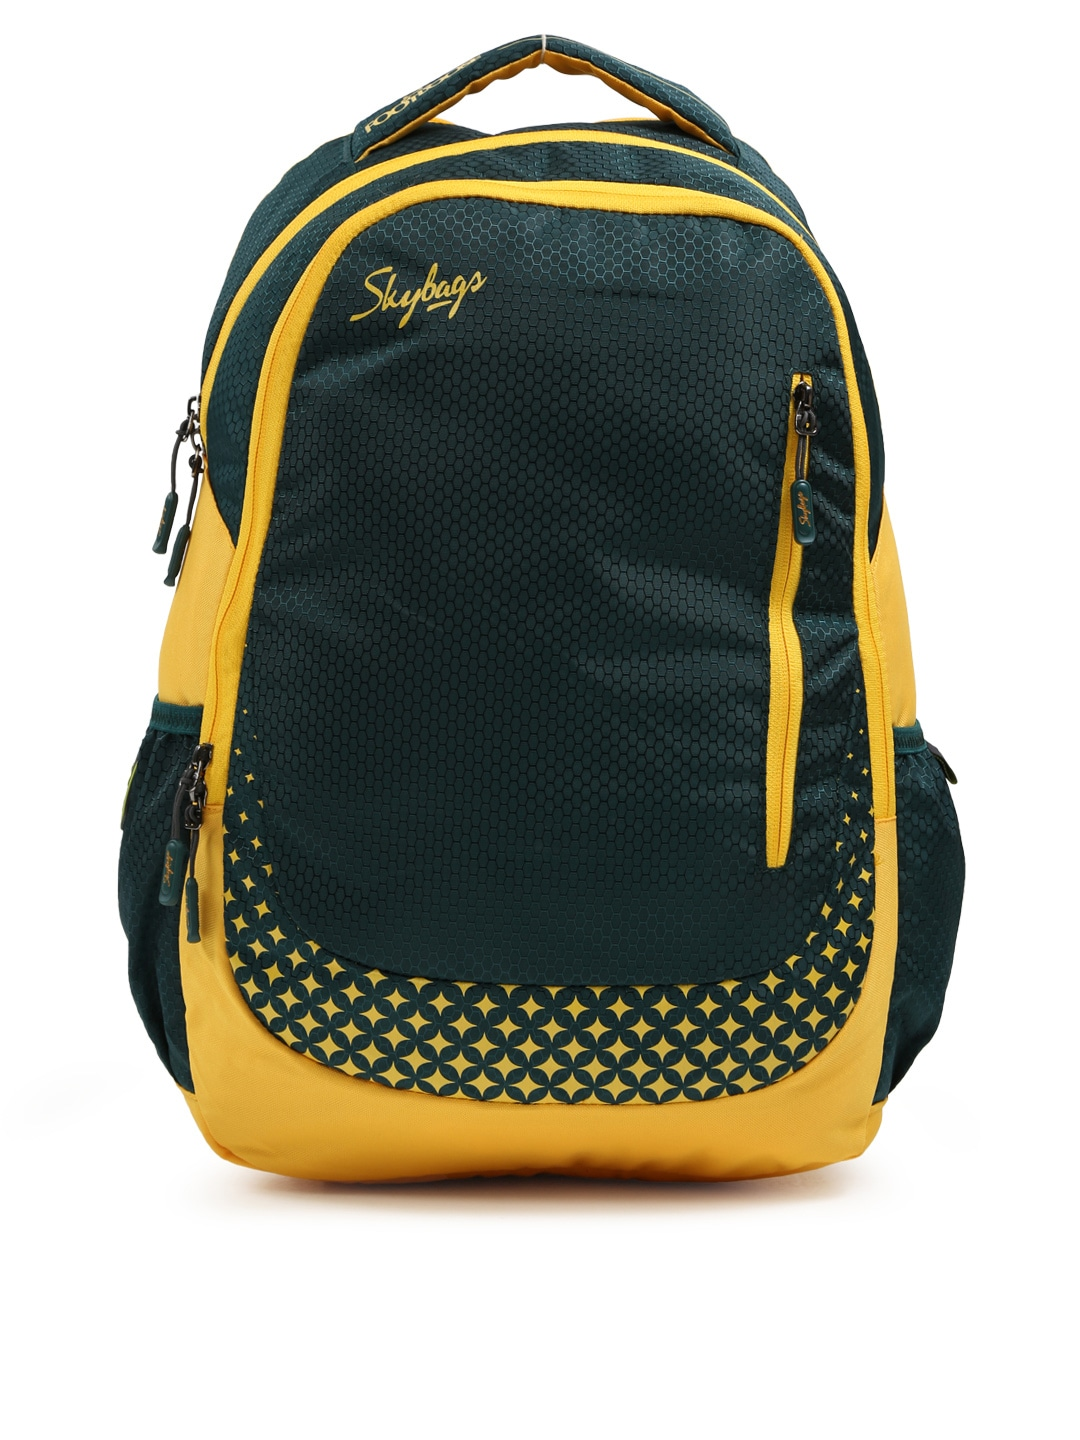 Buy Skybags Footloose Blitz Plus 02 Unisex Green & Yellow Printed Laptop Backpack Online at Best Price in India